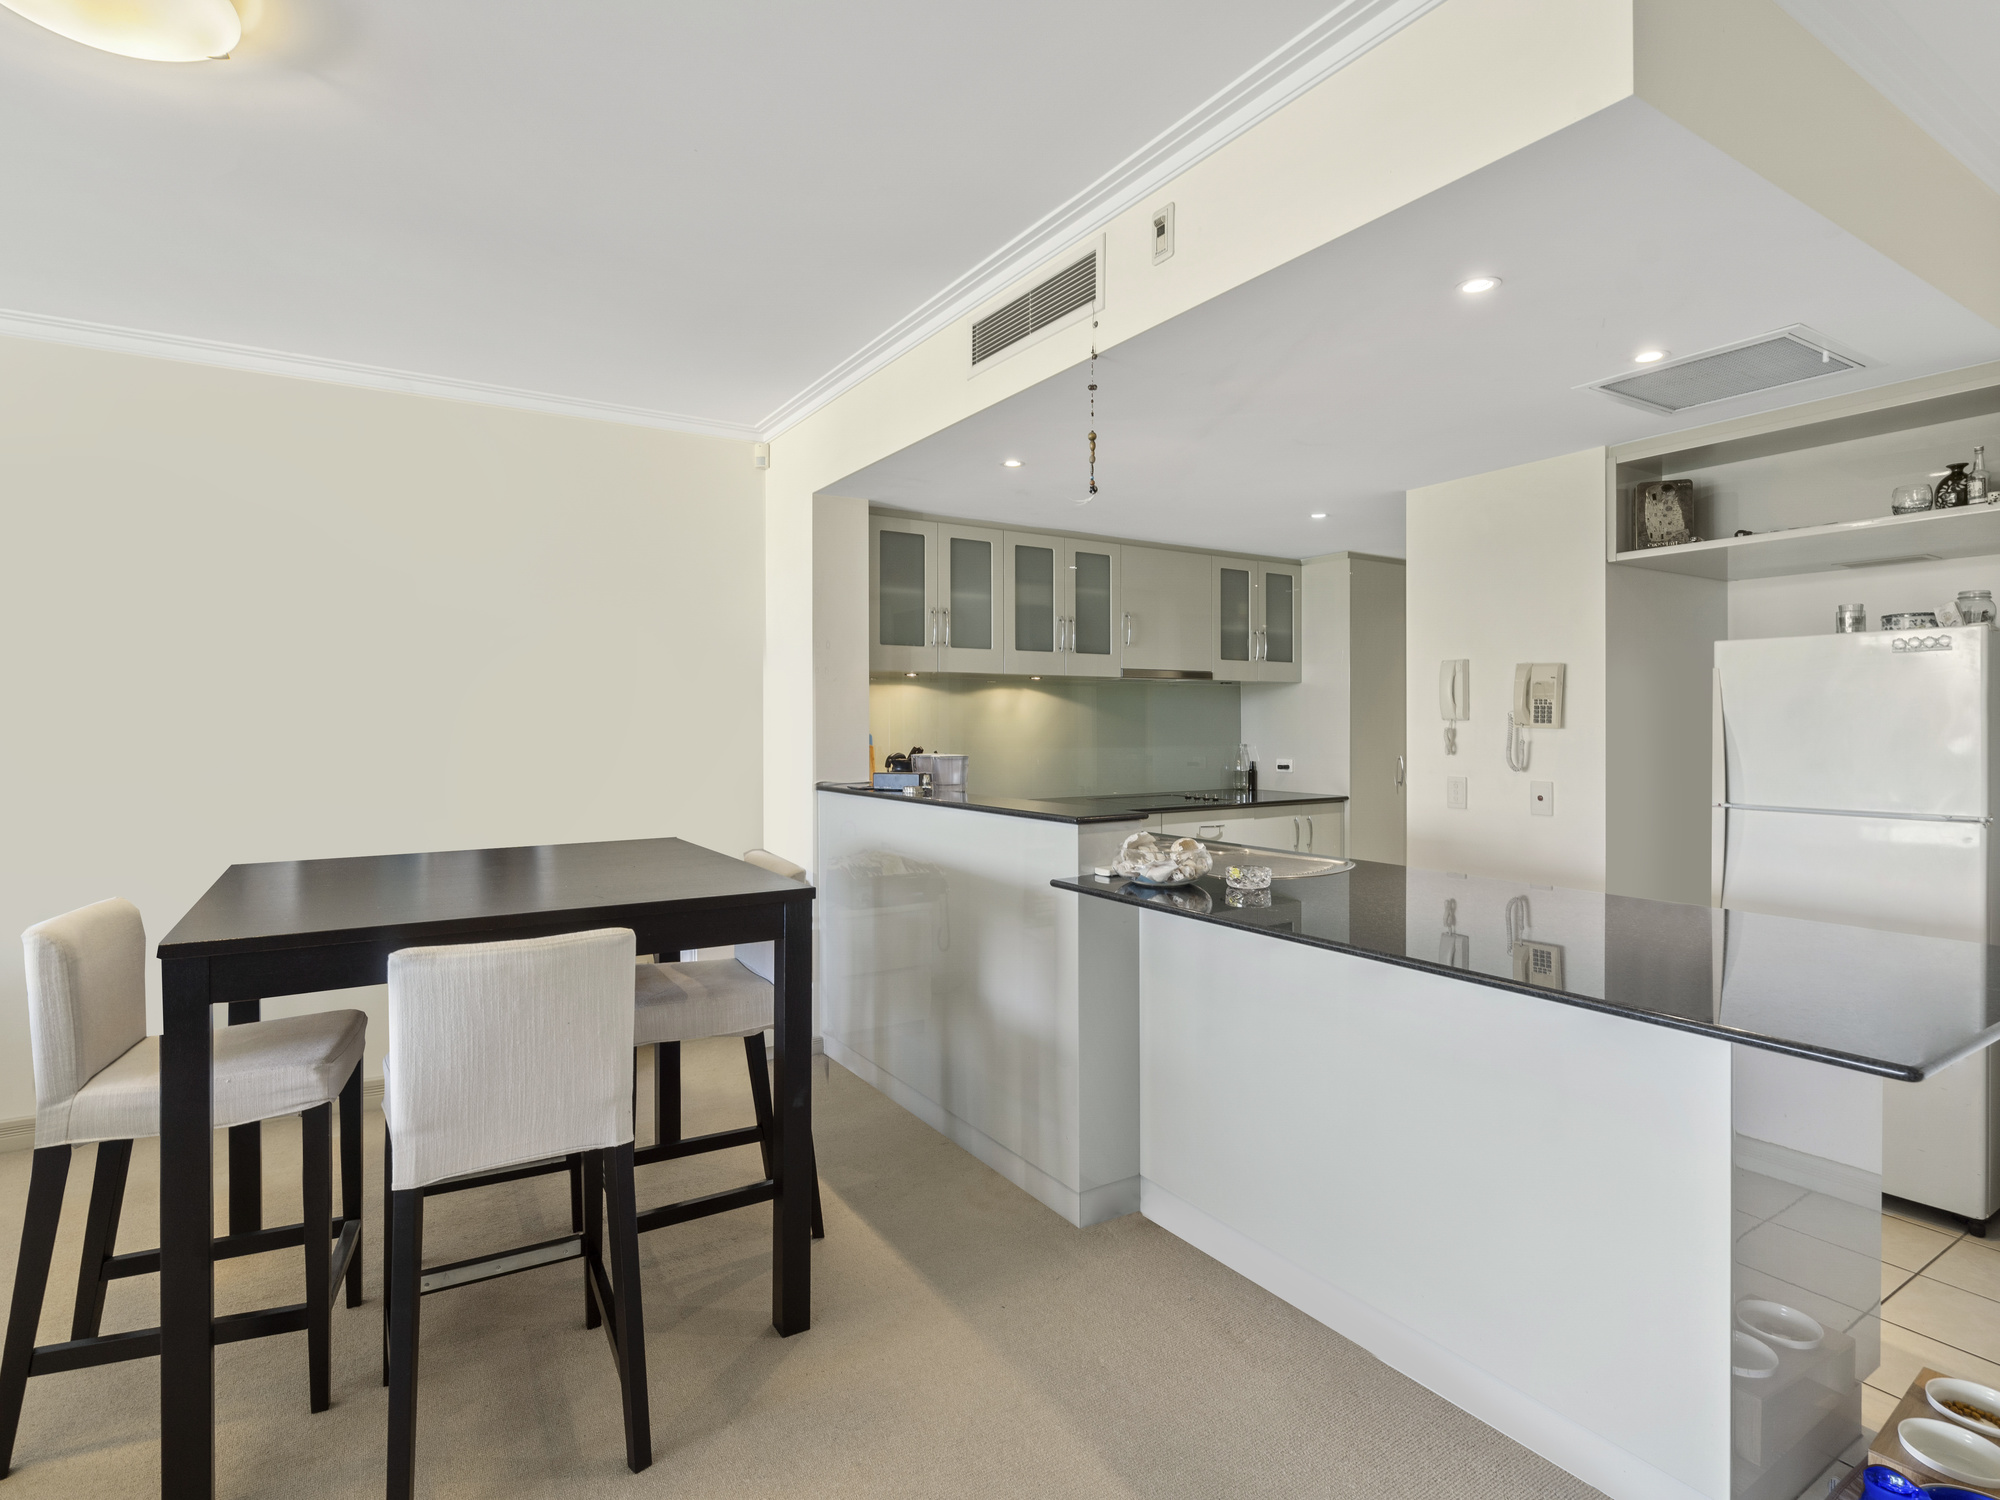 Real Estate | Gold Coast | Chevron Realty | 019 Open2view Id687061 4167 Ross Street